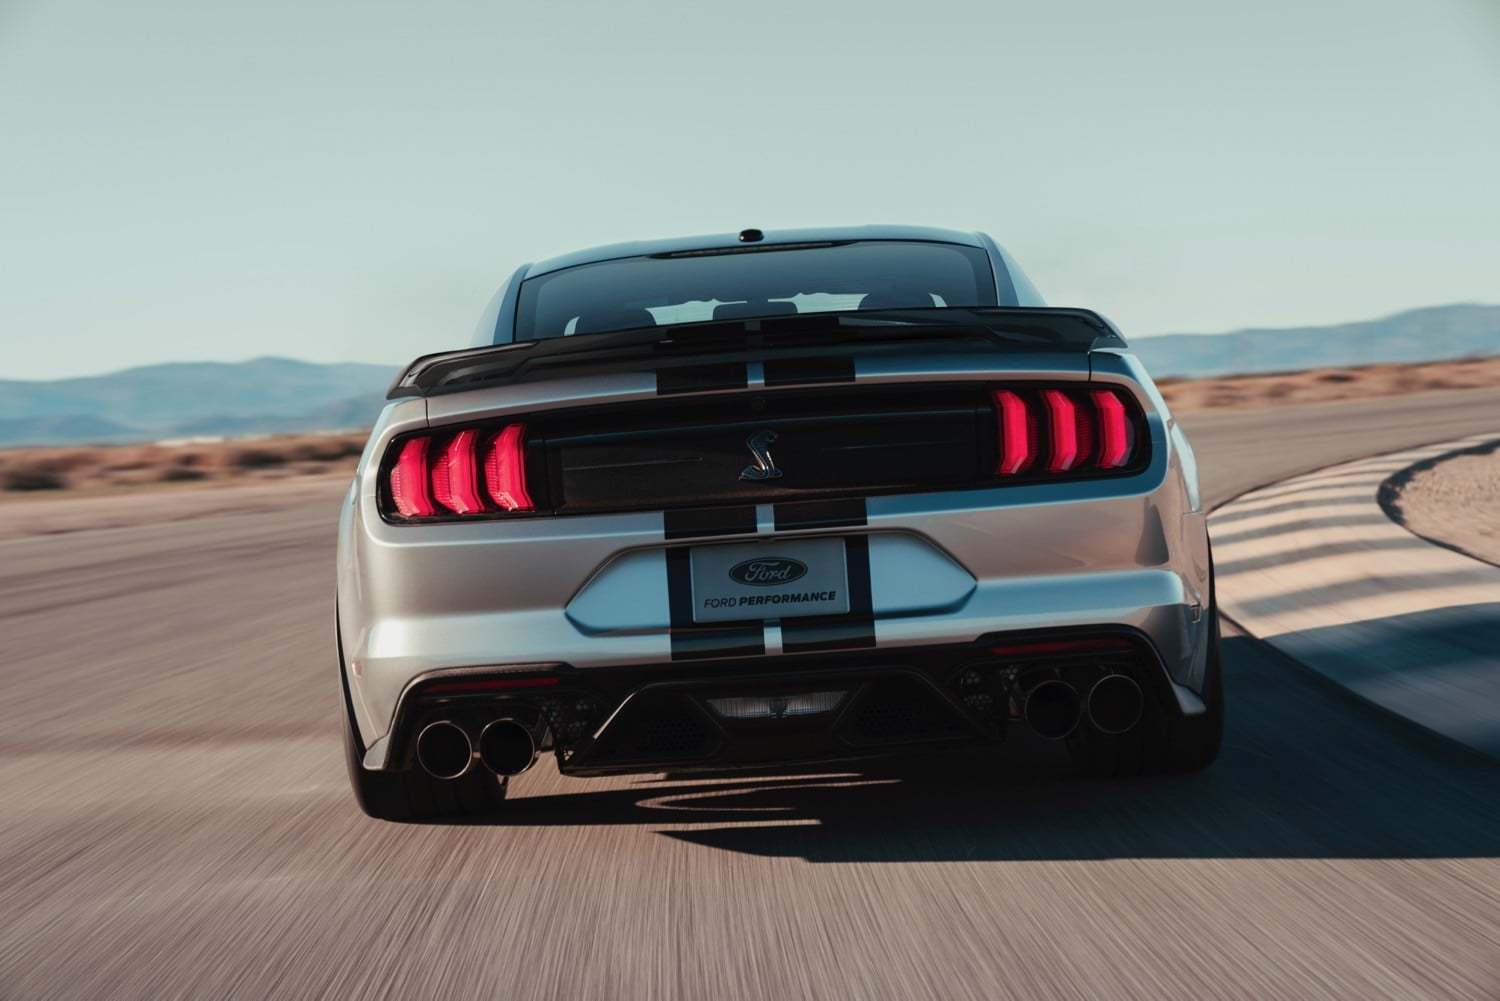 2020 Ford Mustang Electric Gt 11.17.19